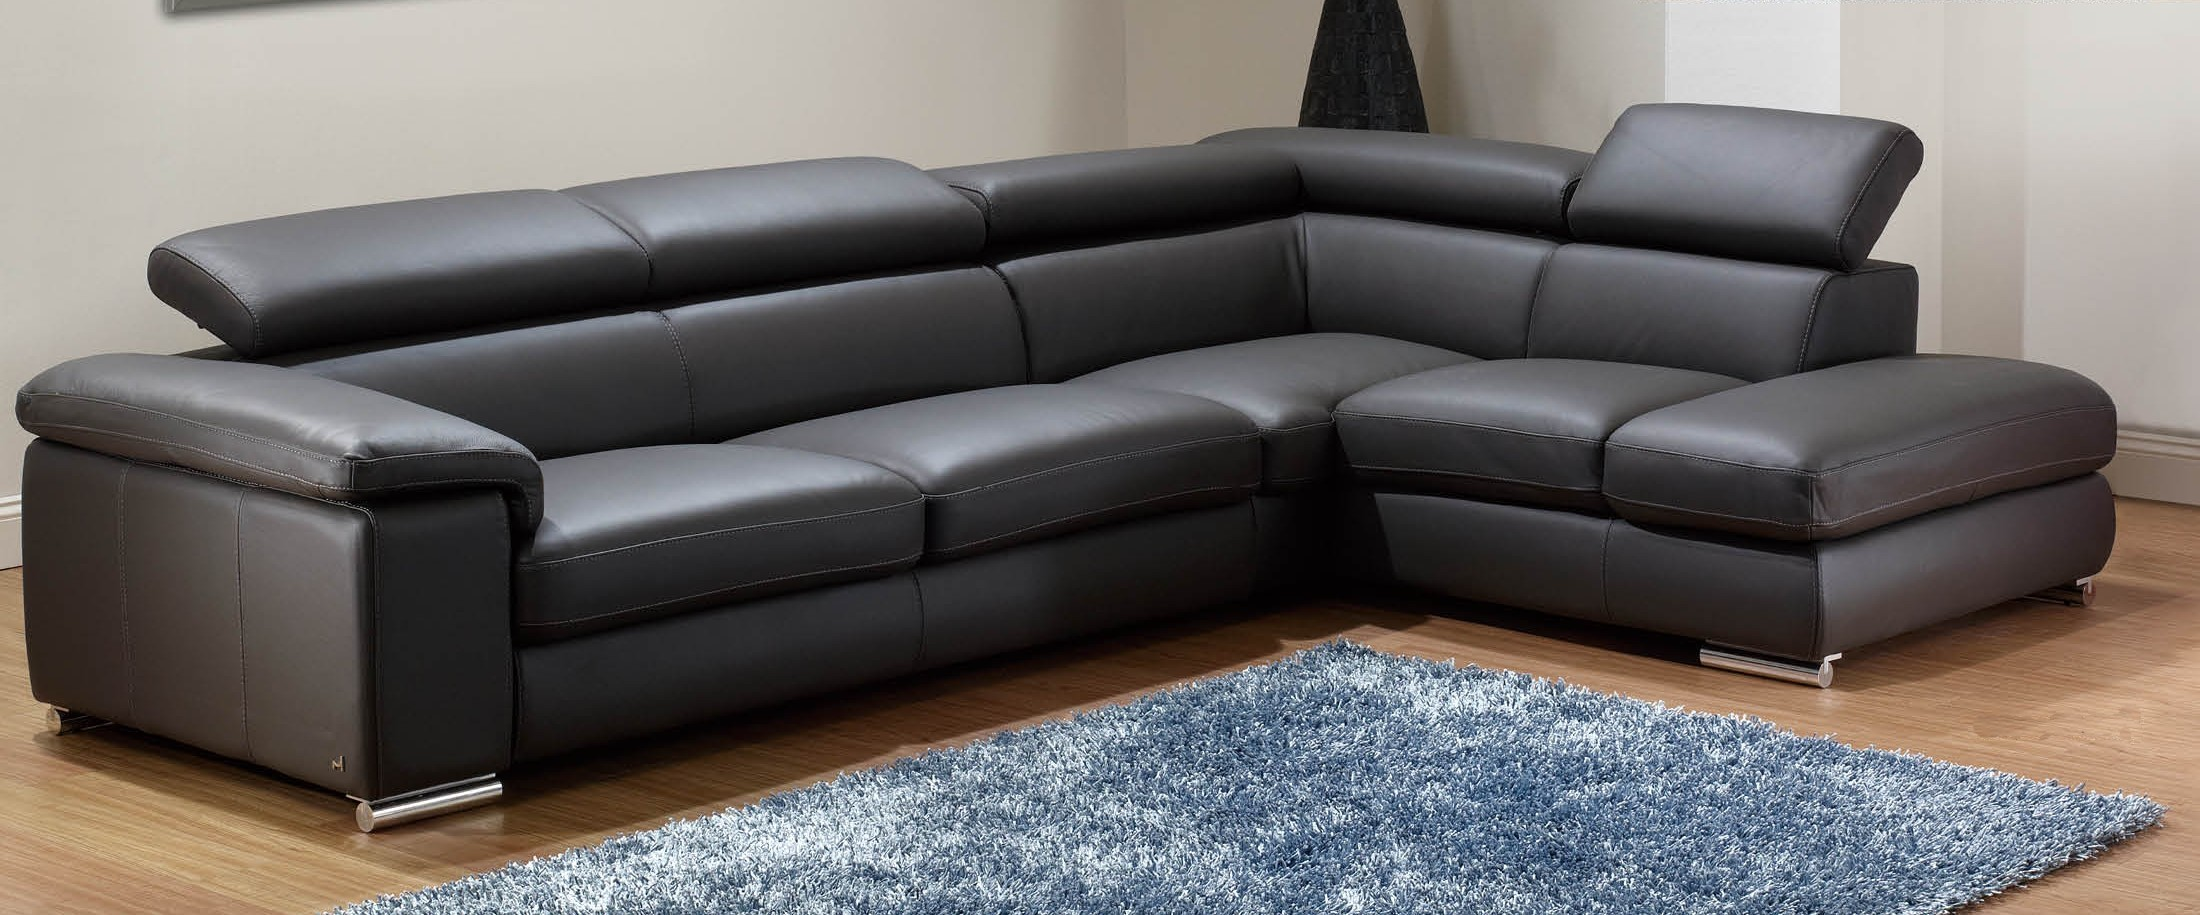 Epic Modern Leather Sectional Sofa 19 In Sofas and Couches Ideas with Modern Leather Sectional Sofa